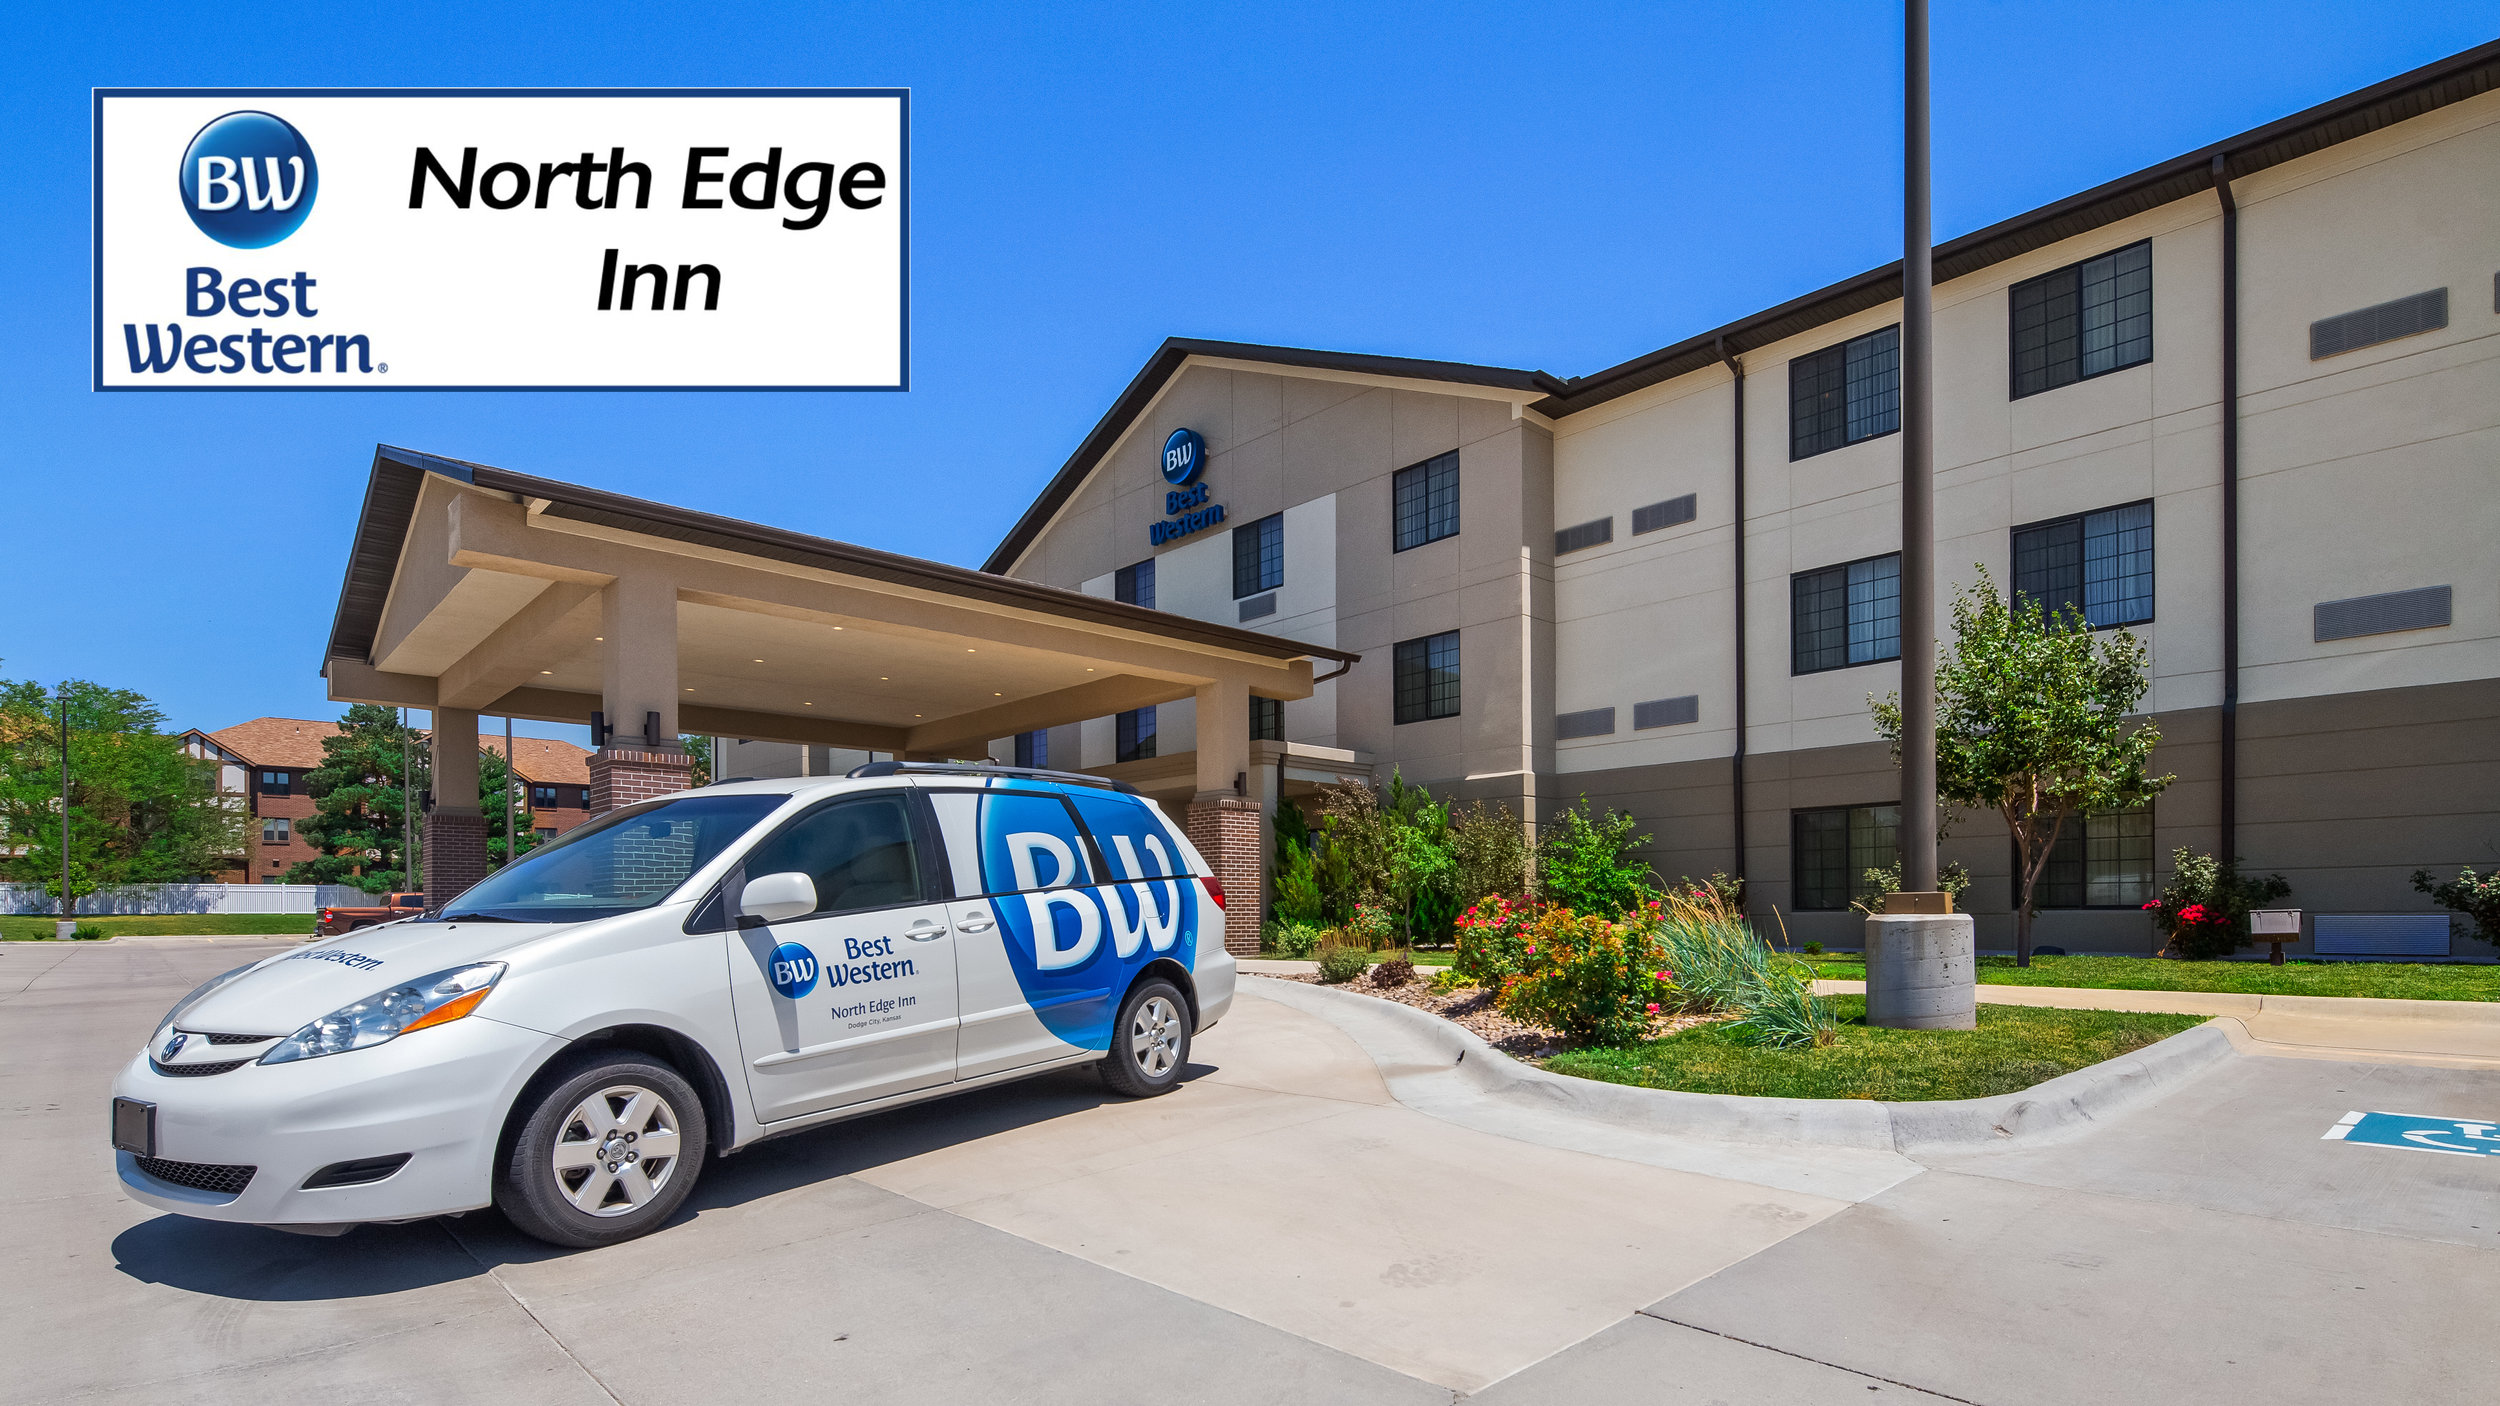 Best Western North Edge Inn - 404 W. Frontview Dr., Dodge City, KS620-371-6441Stay & Play Rate $139.99 plus tax